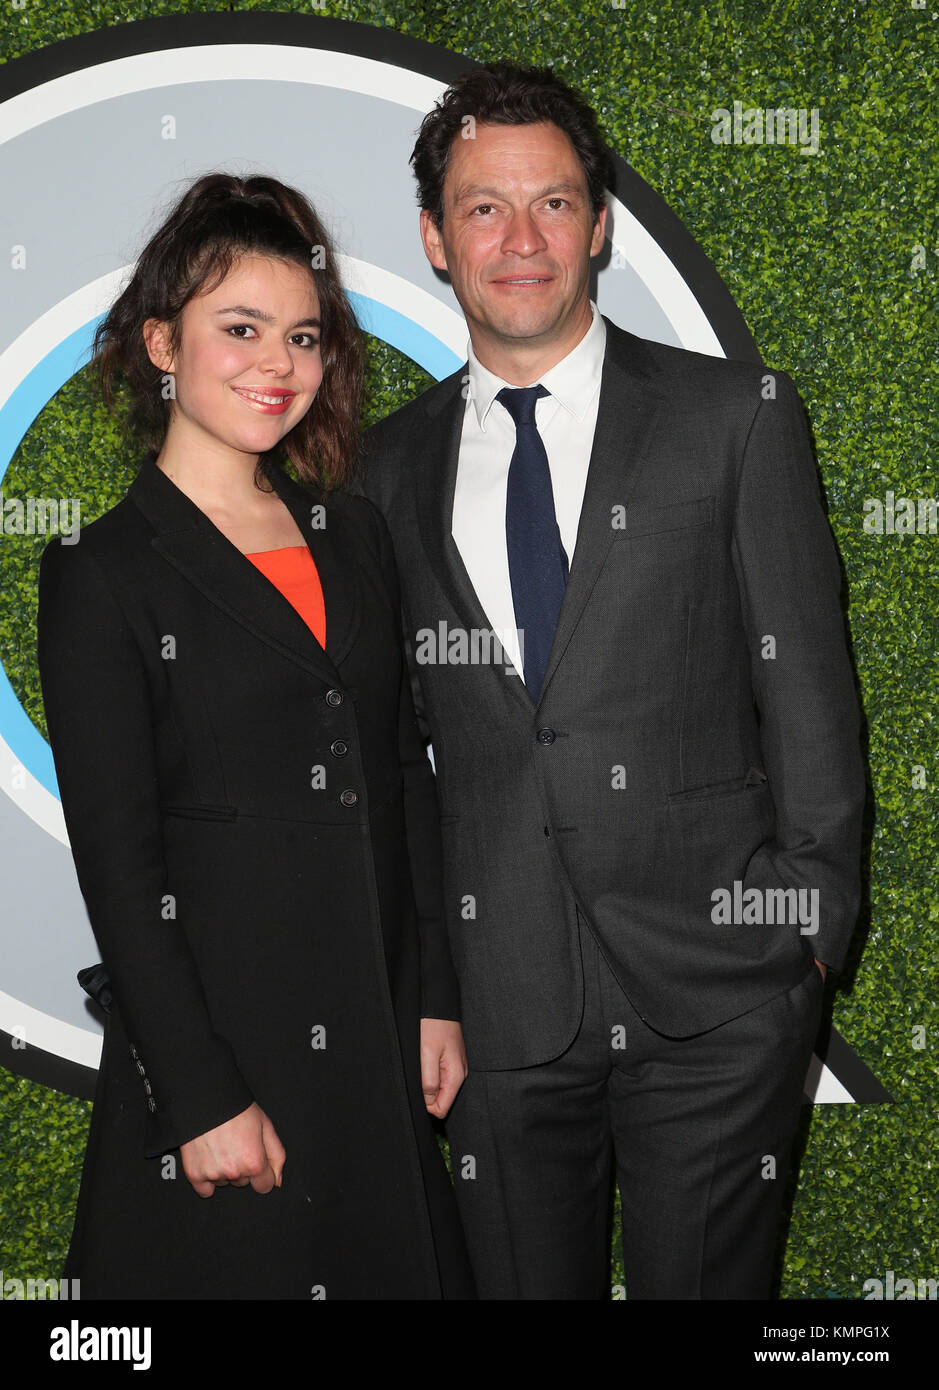 Dominic West The Wire Stock Photos & Dominic West The Wire Stock ...